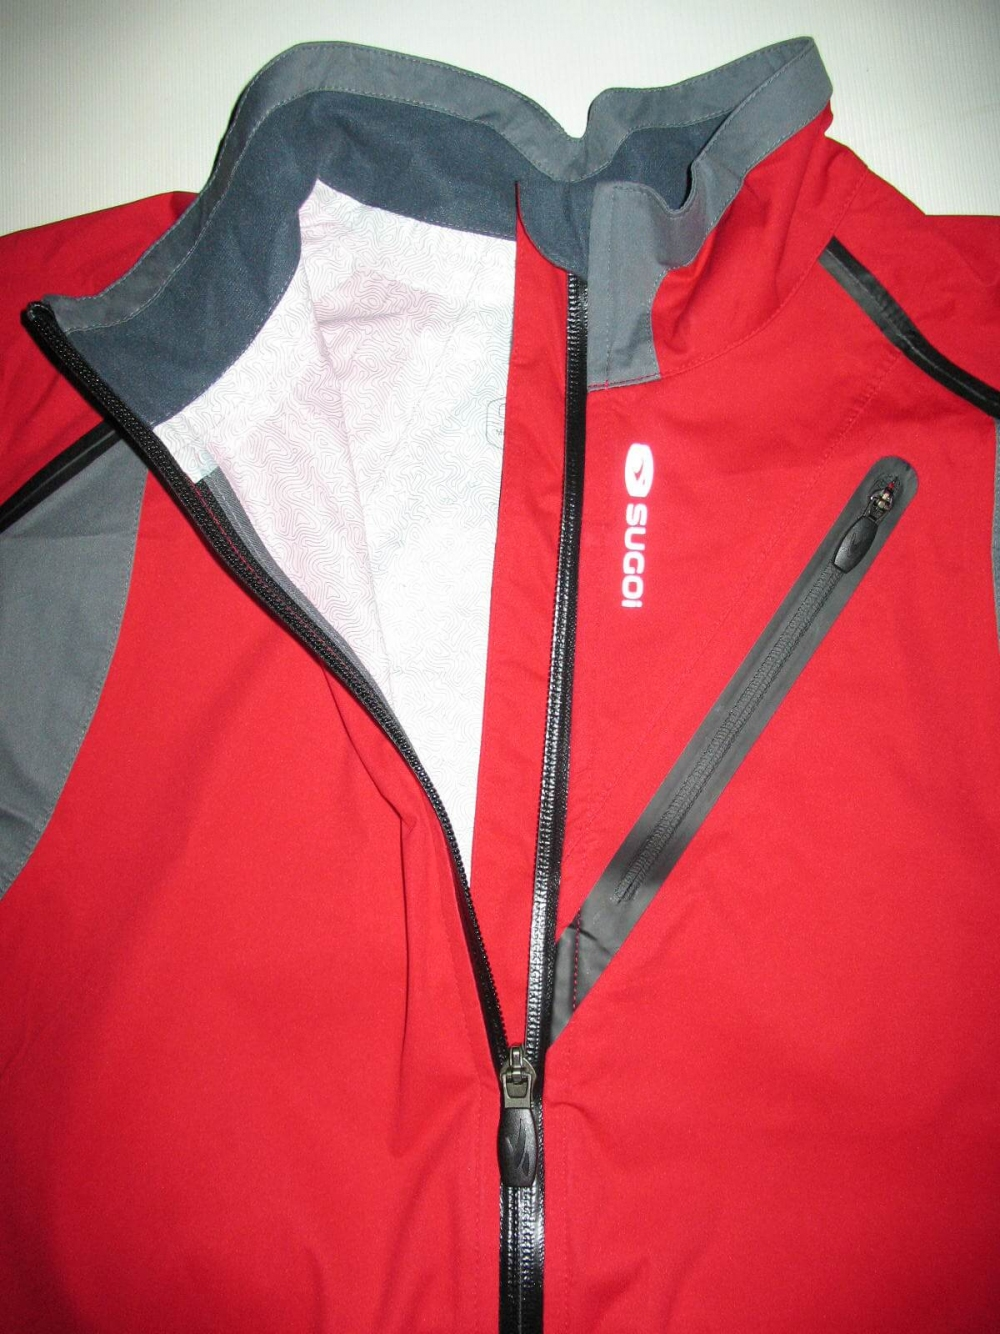 Куртка SUGOI waterproof light bike/run jacket (размер M) - 3